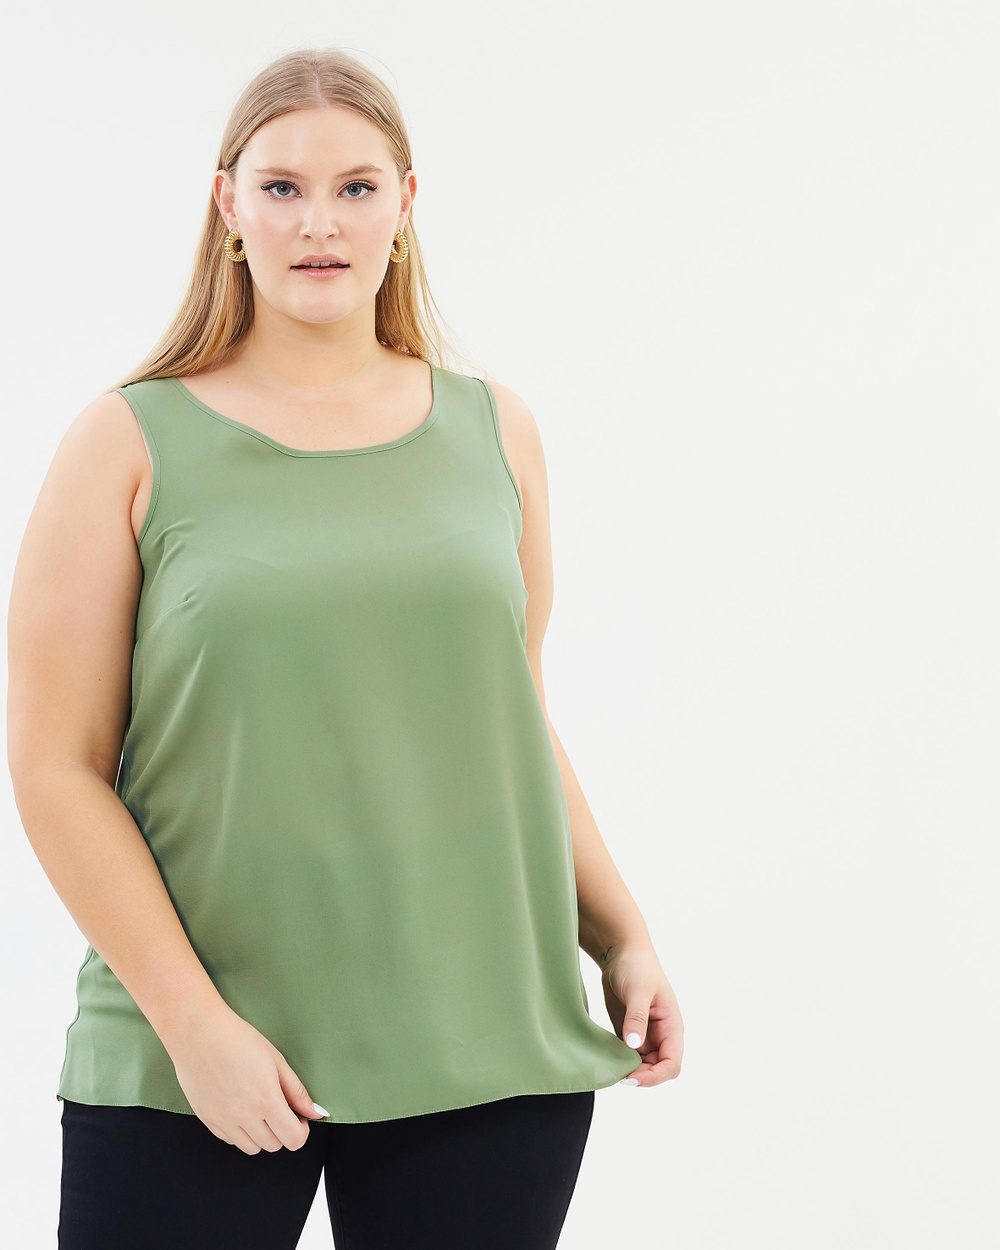 Photo of EVANS EVANS Built Up Vest Tops Light Green Built Up Vest - For fashion that flatters and celebrates your curves, look no further than EVANS. Coming in a clean black design with a round neckline, the Built Up Vest is sure to make a versatile addition to your wardrobe. Our model is wearing a size UK 18 top. She is 182.9cm (6'0